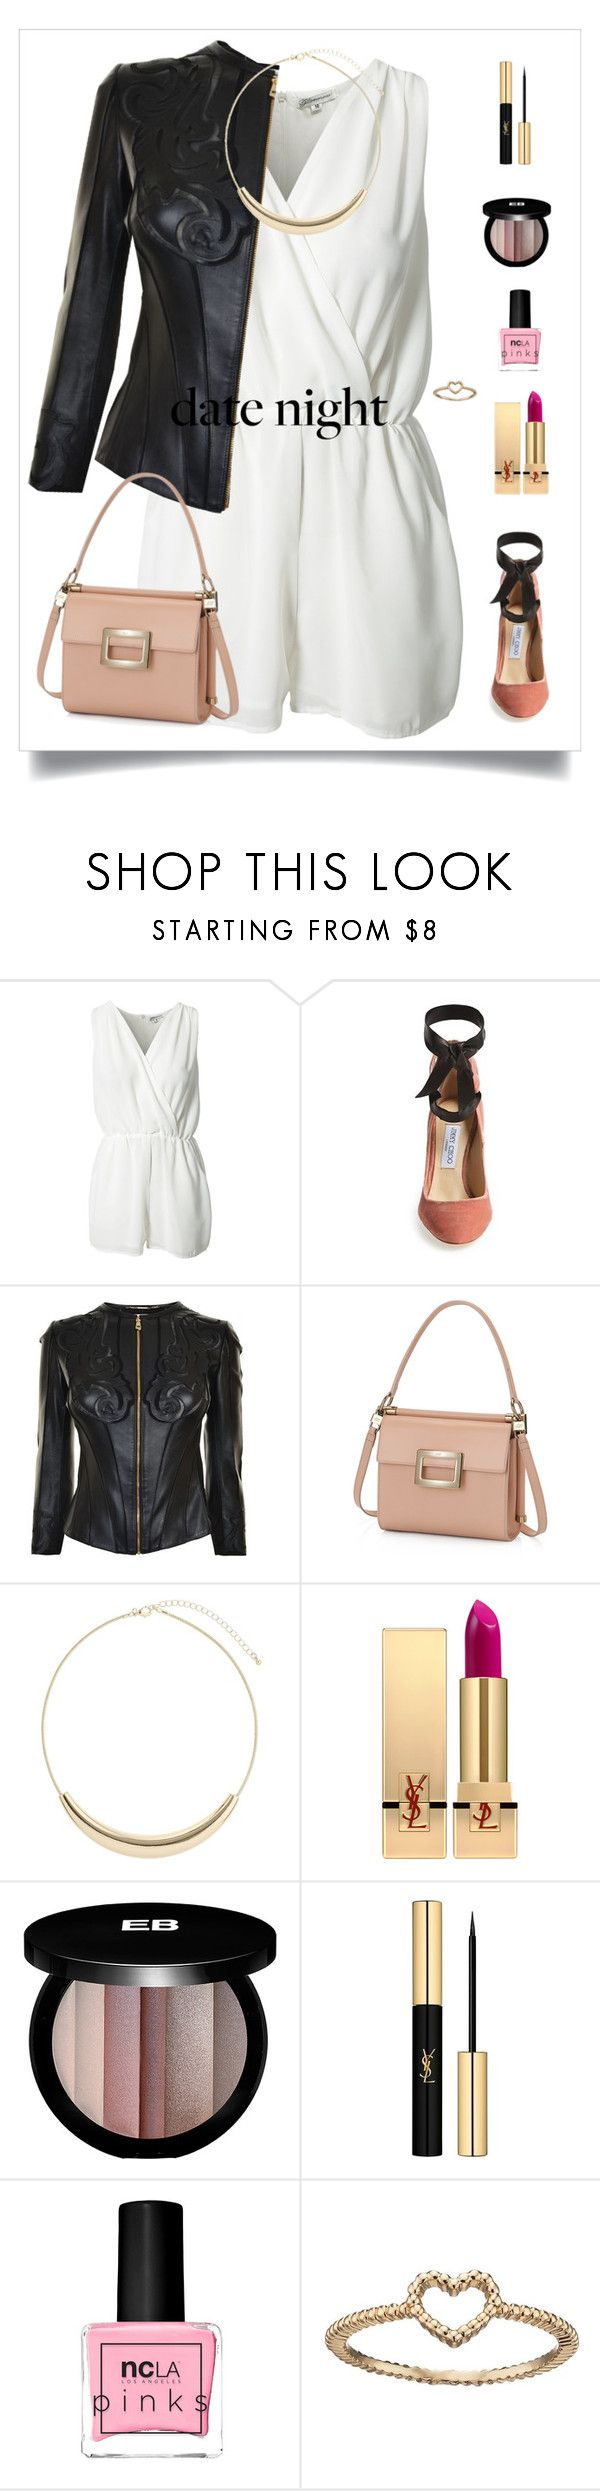 """fofa shine - date night"" by fofa-cute-vip ❤ liked on Polyvore featuring Glamorous, Jimmy Choo, Versace, Wallis, Yves Saint Laurent, Edward Bess, ncLA and LC Lauren Conrad"